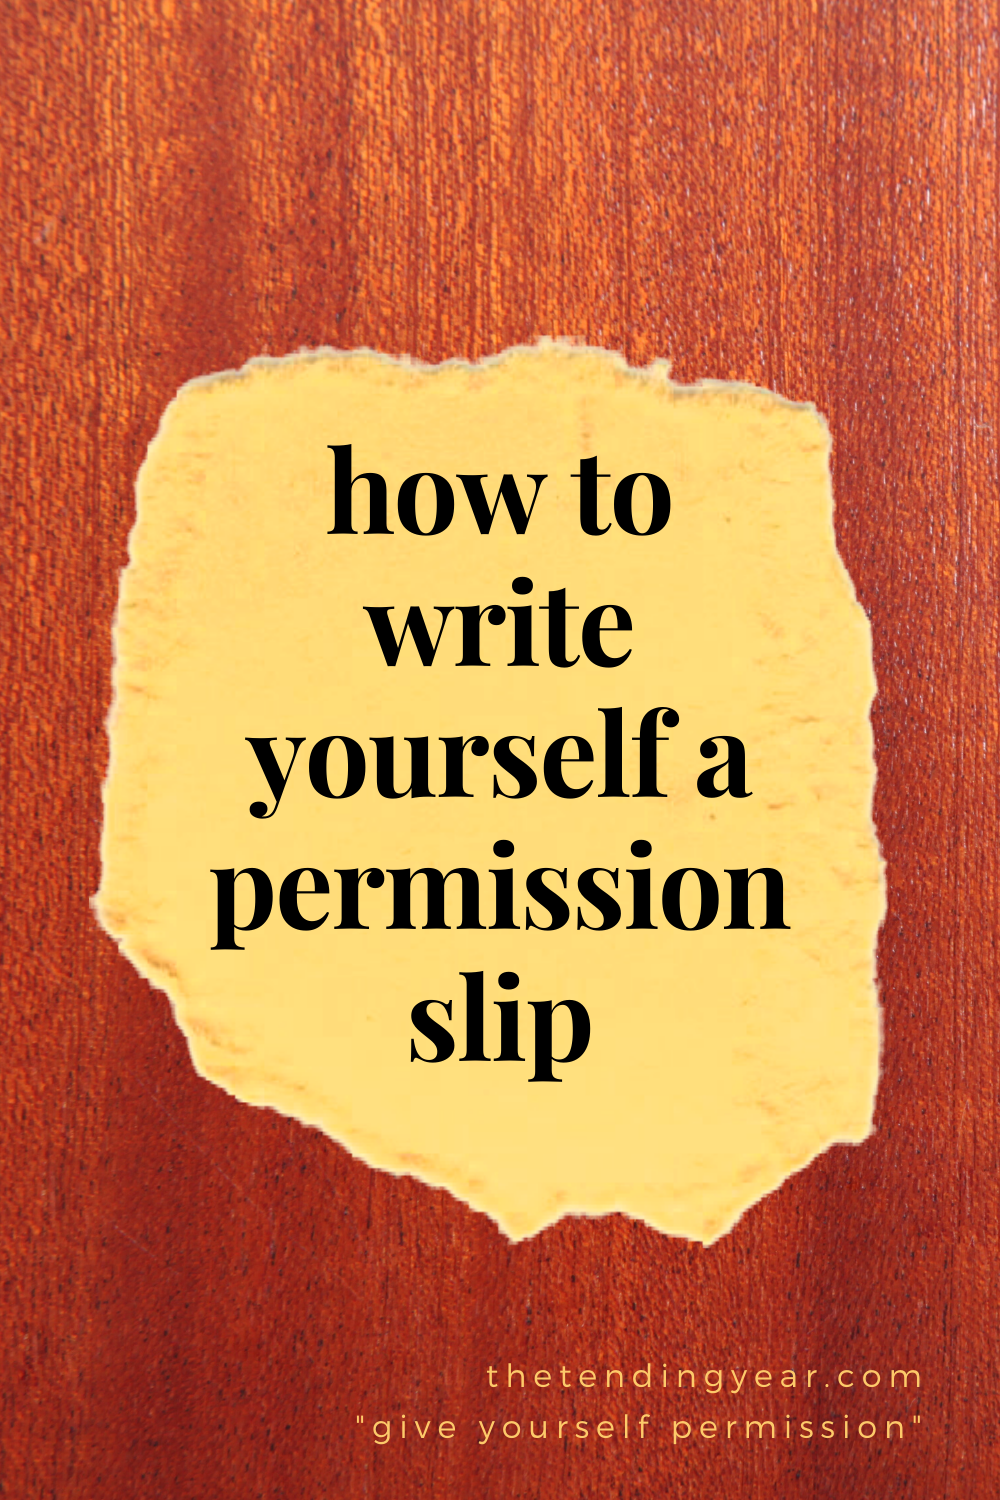 How To Write Yourself A Permission Slip In 2020 Permission Slip Yoga Teacher Resources Writing